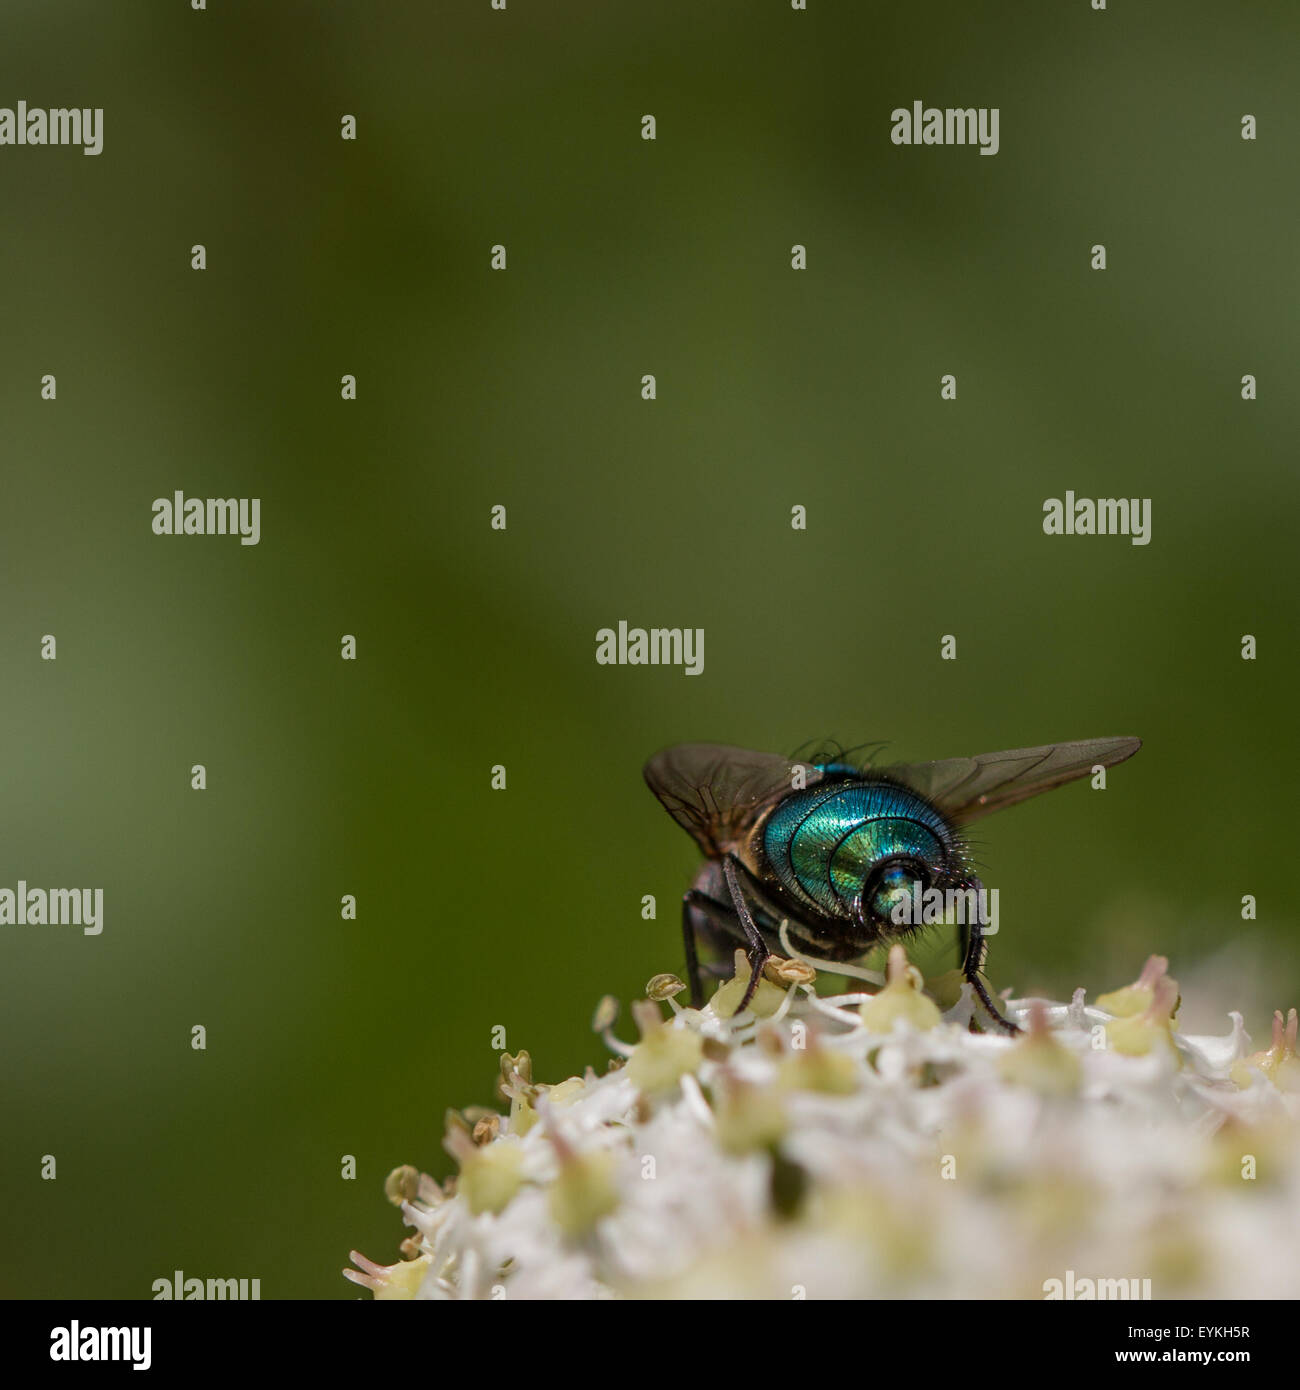 The iridescent rear of a greenbottle fly - Stock Image